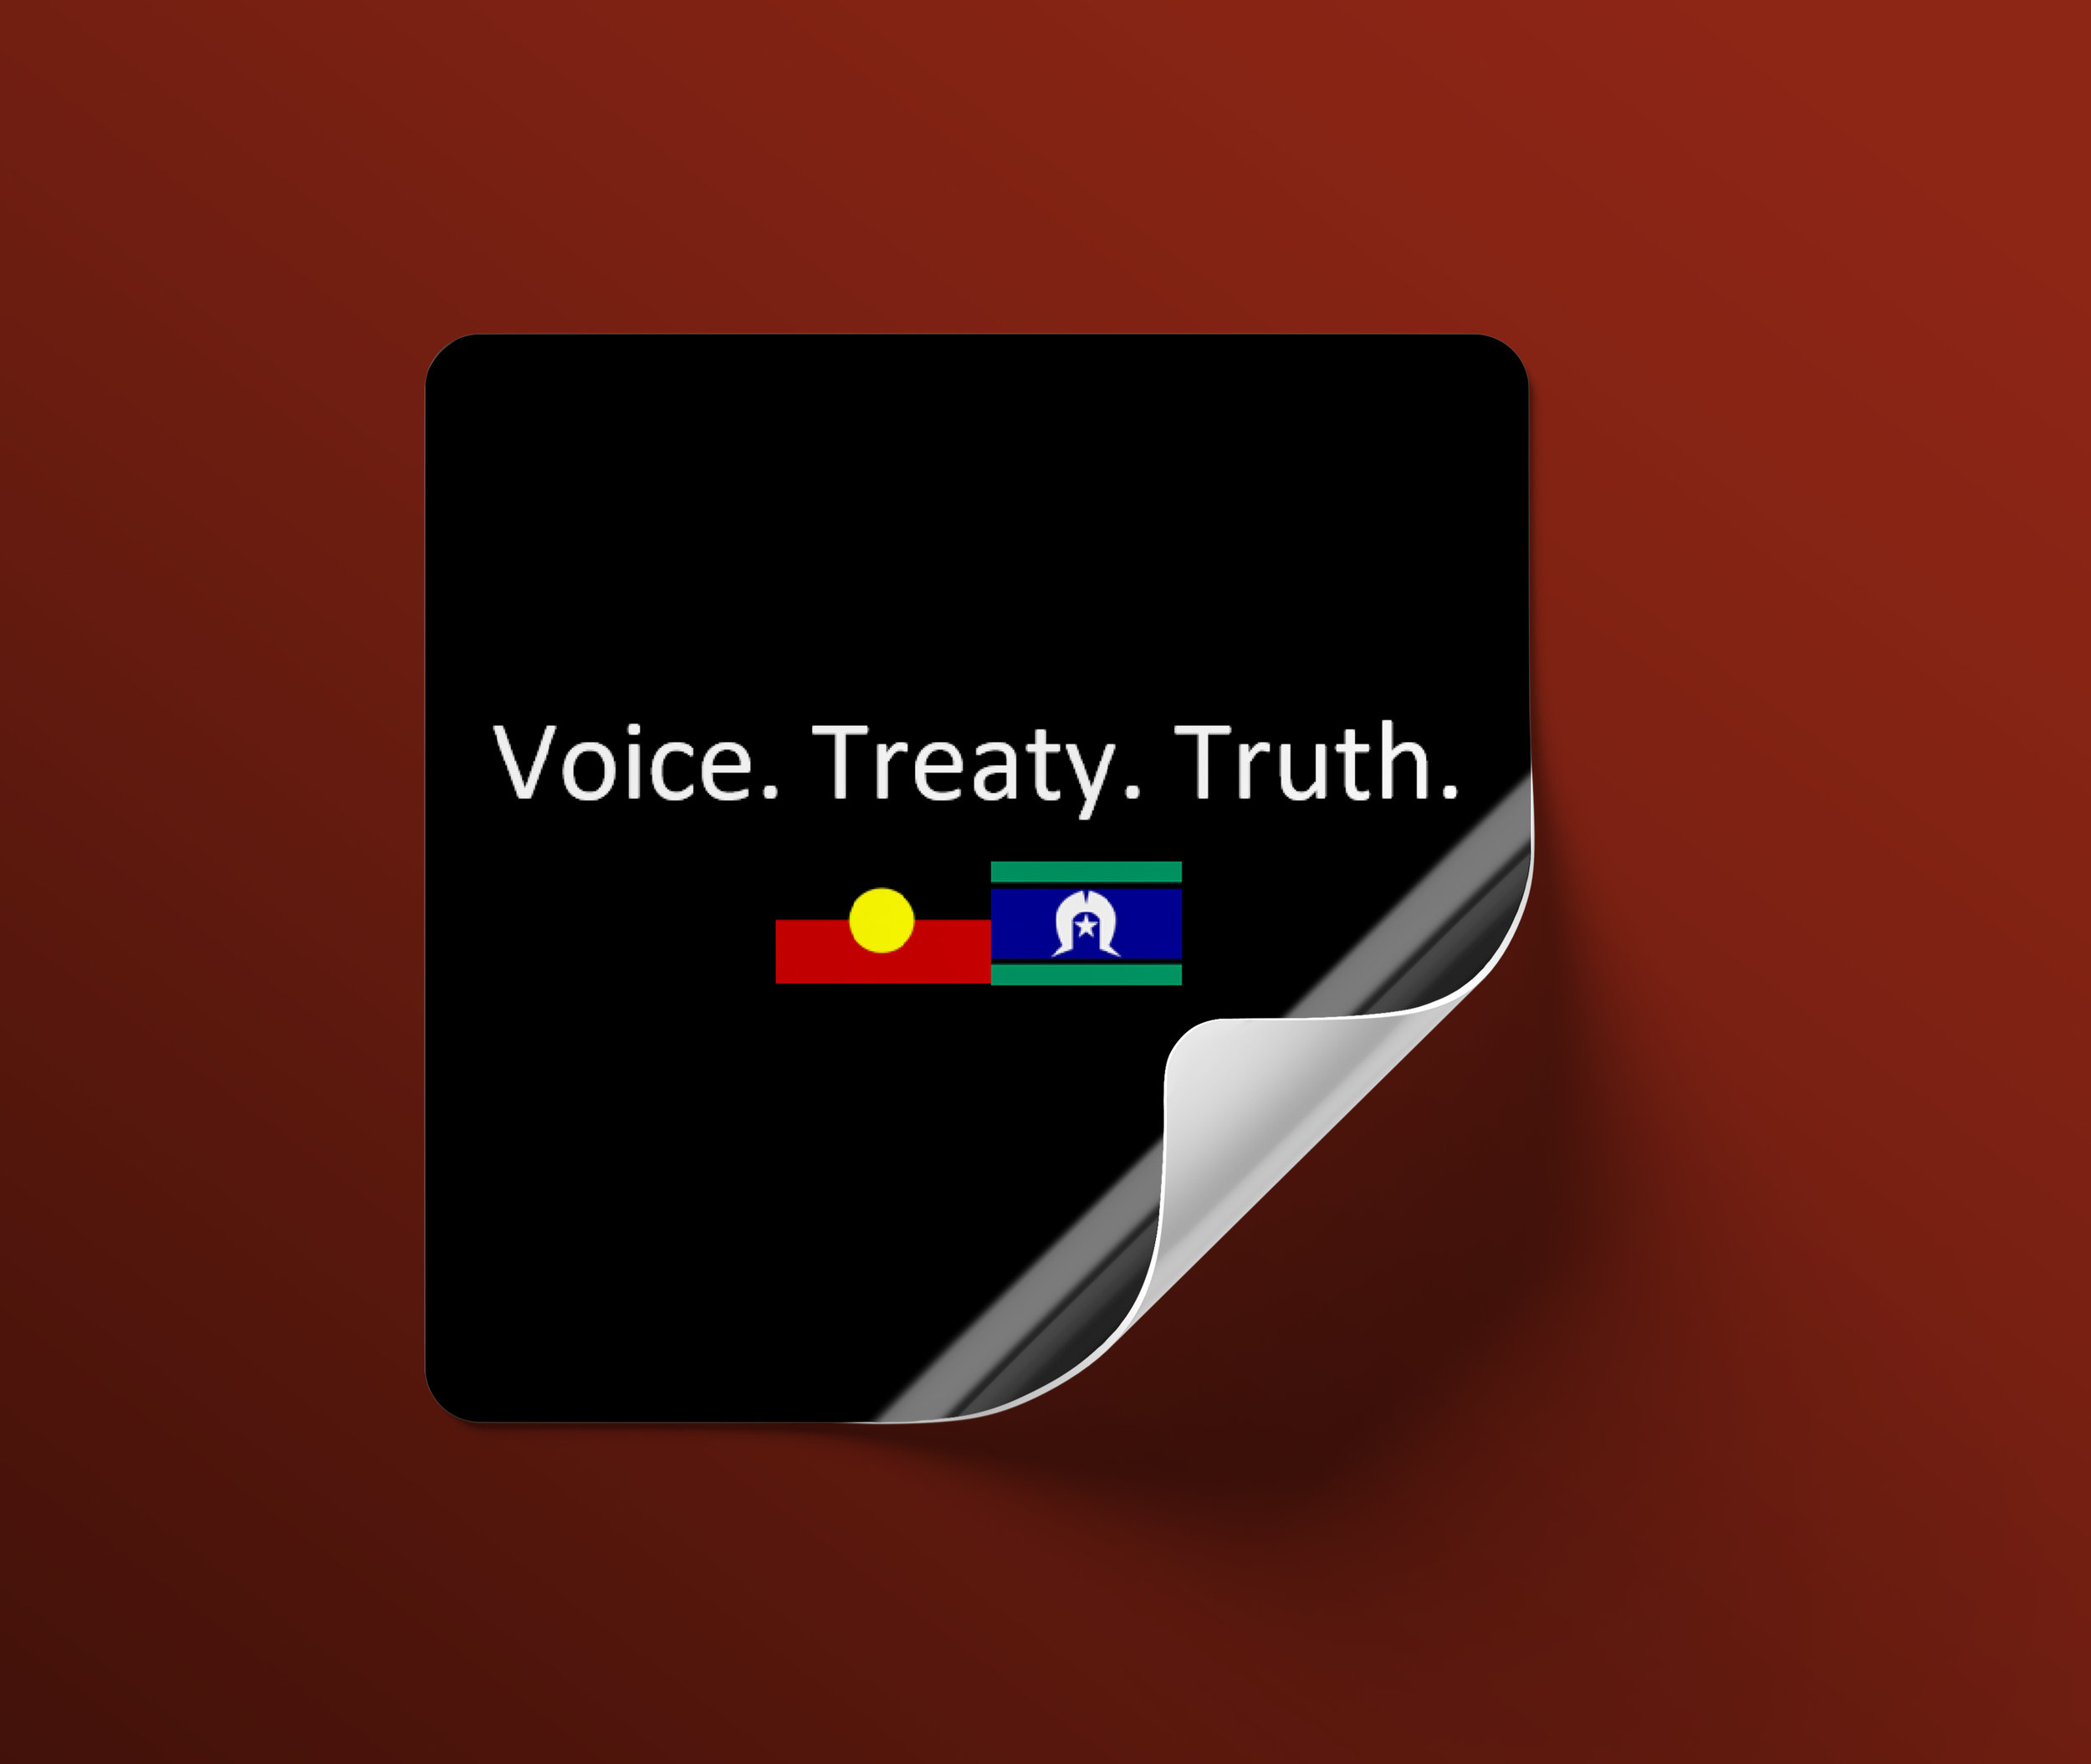 Voice.Treaty.TruthStickers -